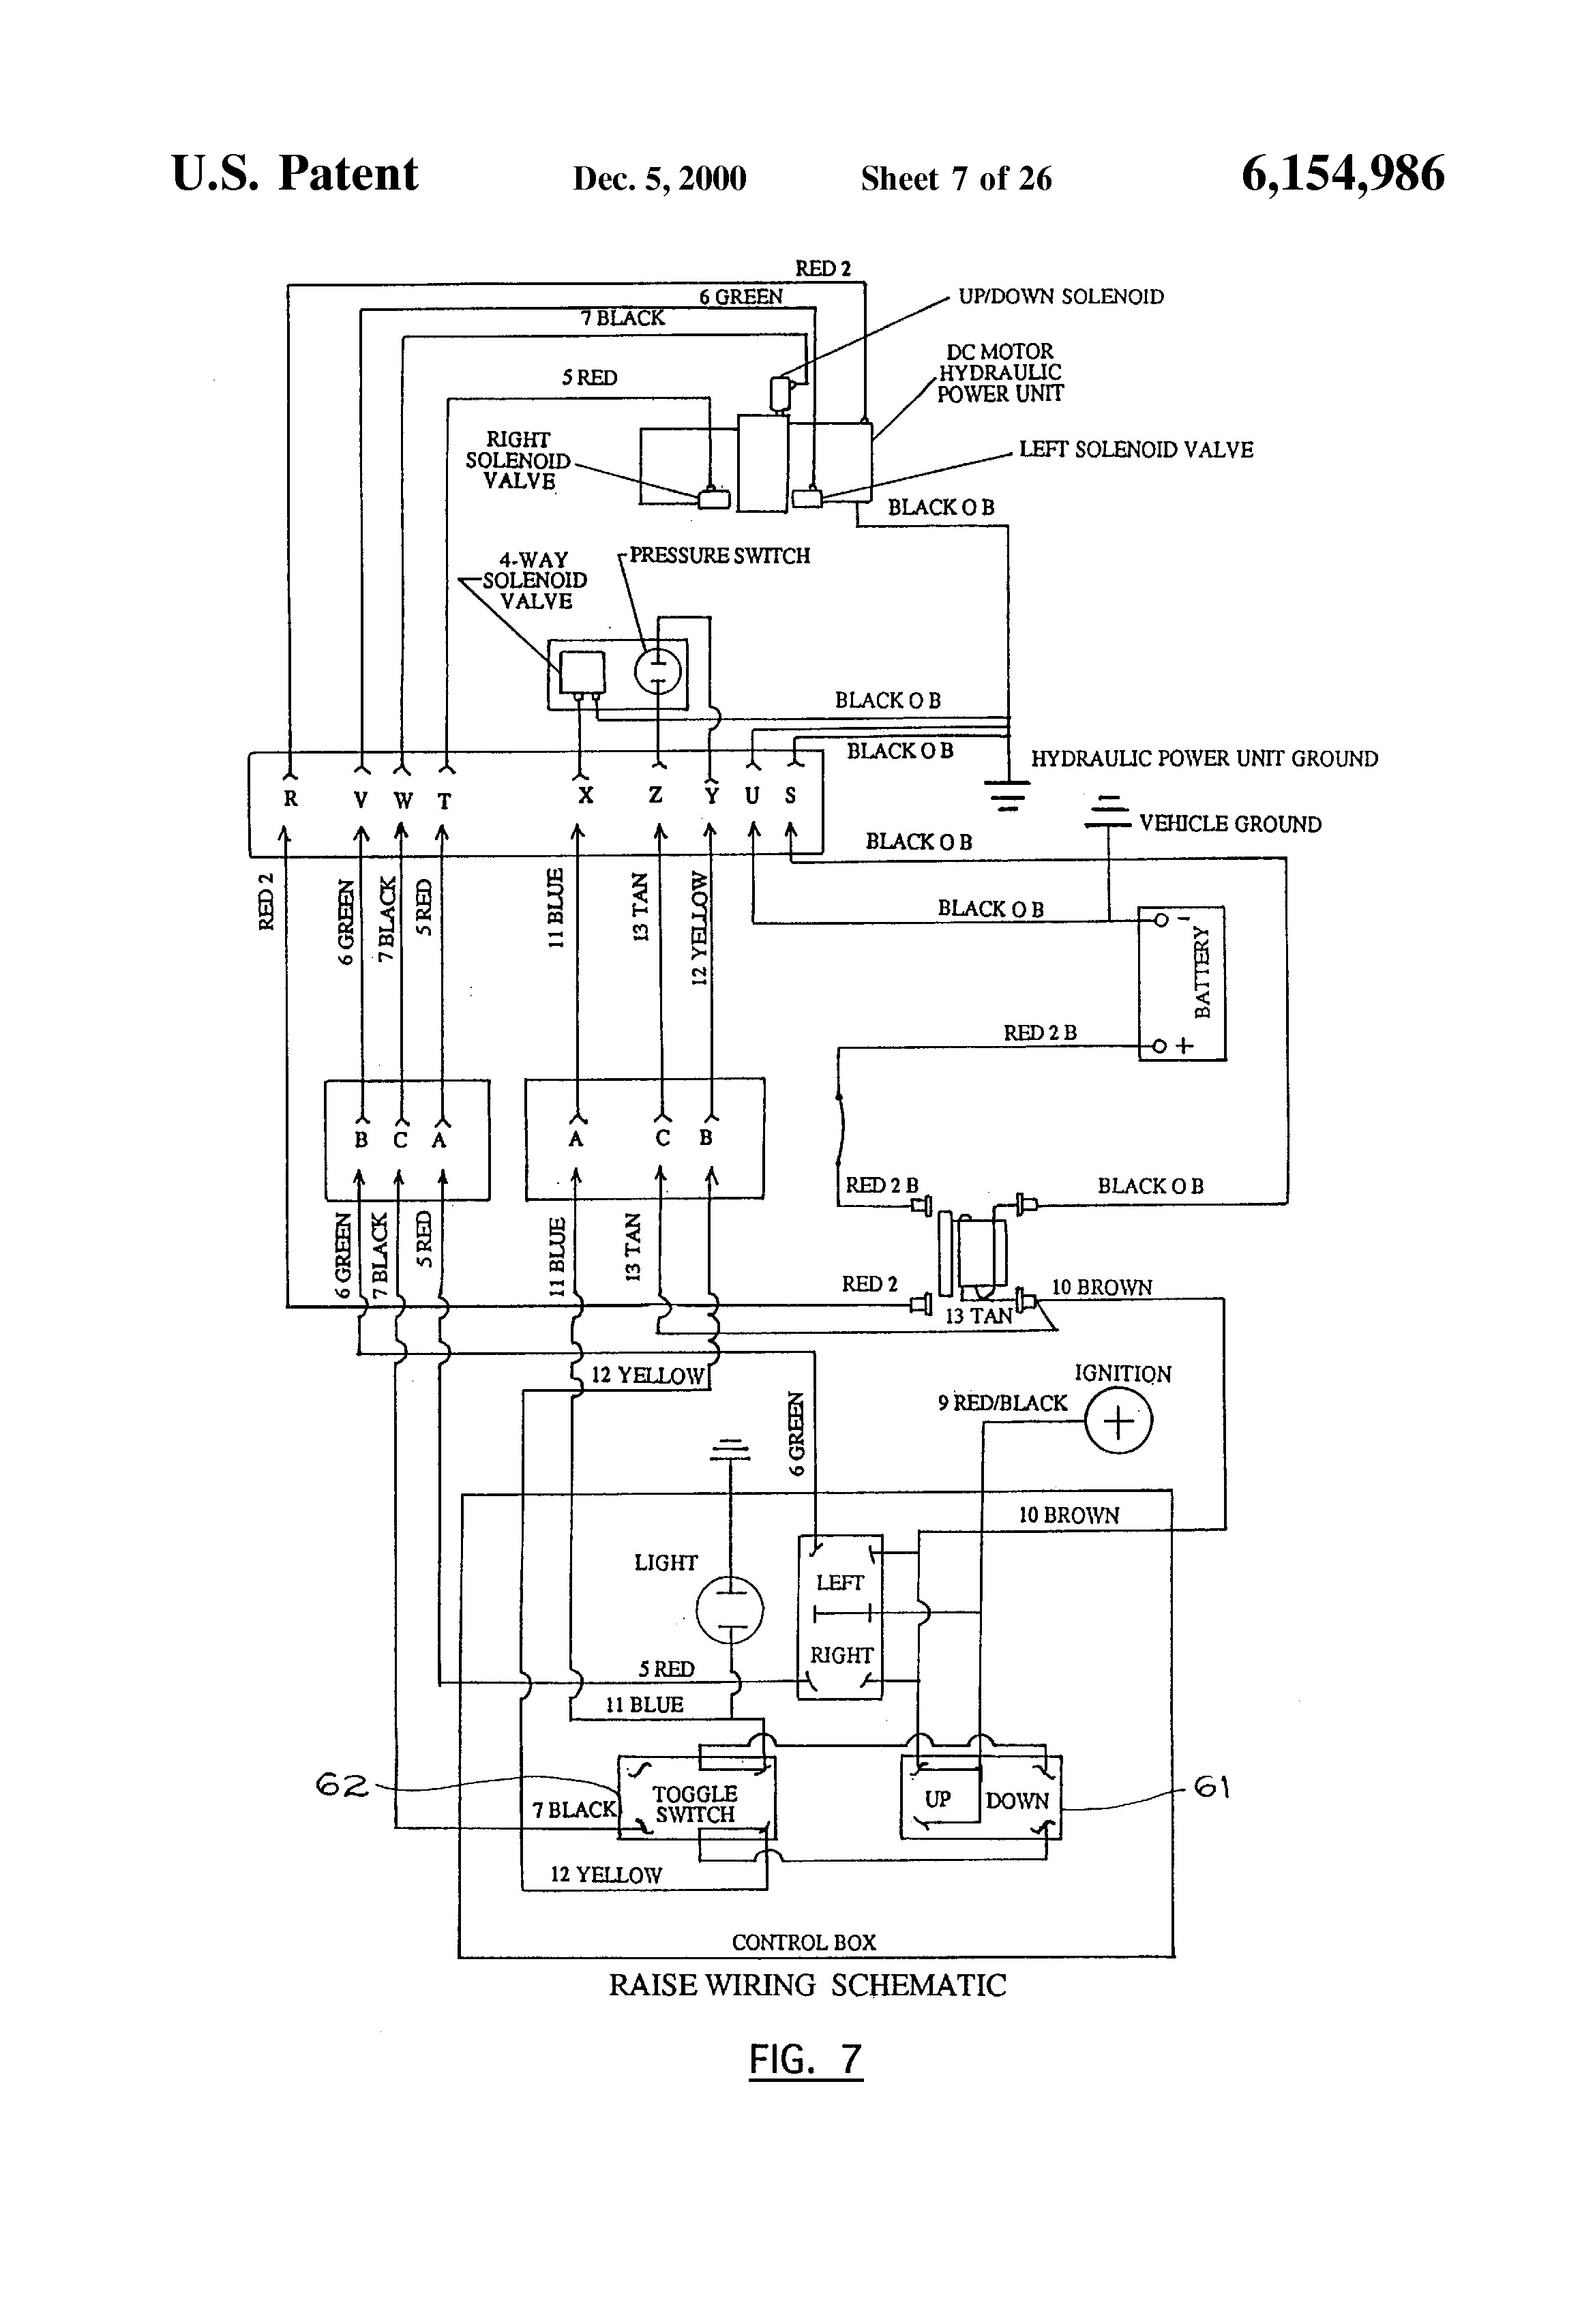 Western Plow Ultra Mount Wiring Diagram on